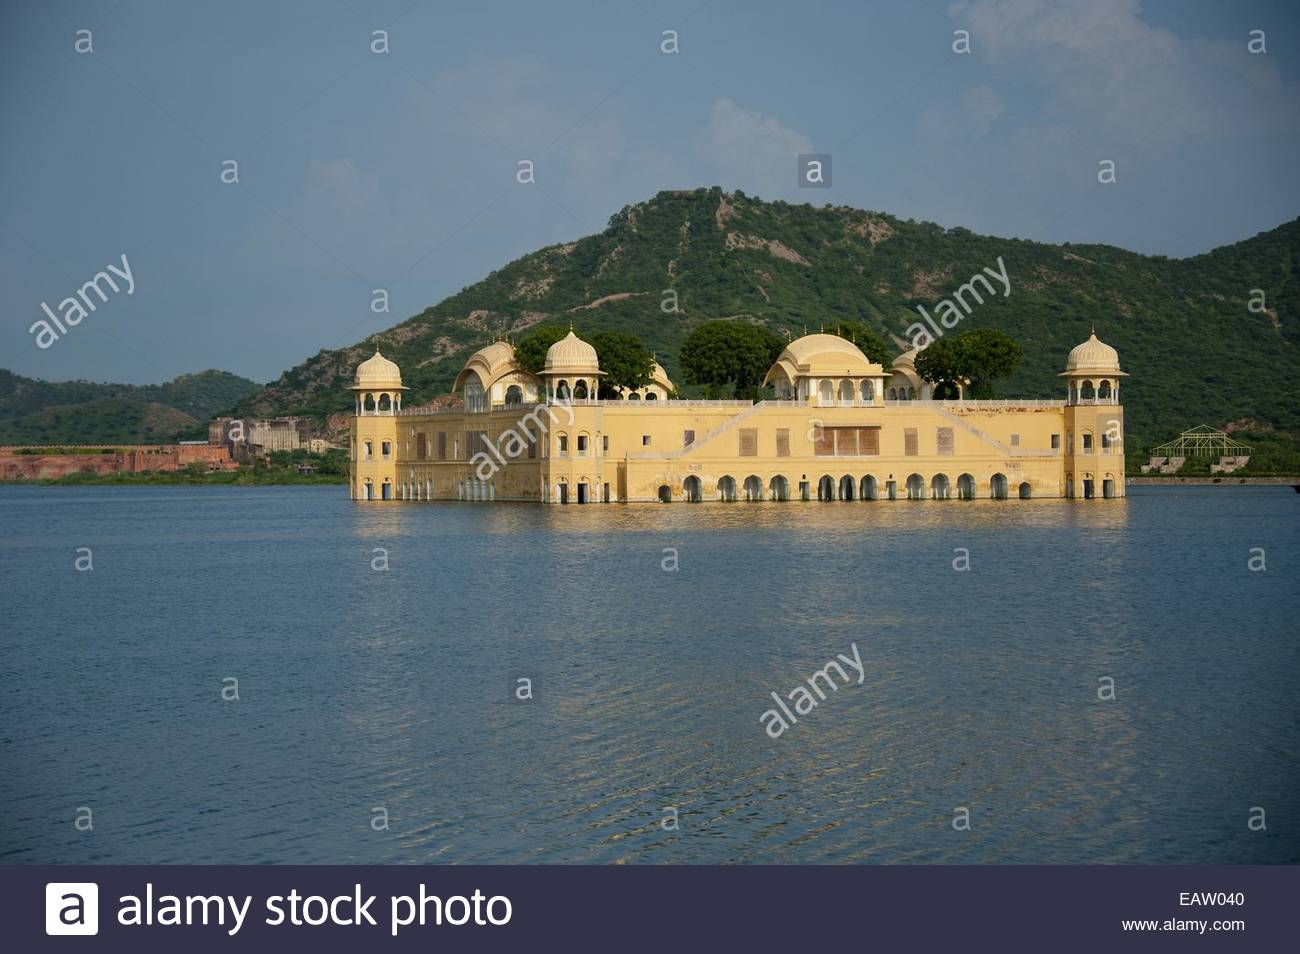 The Lake Palace after monsoon rains. - Stock Image